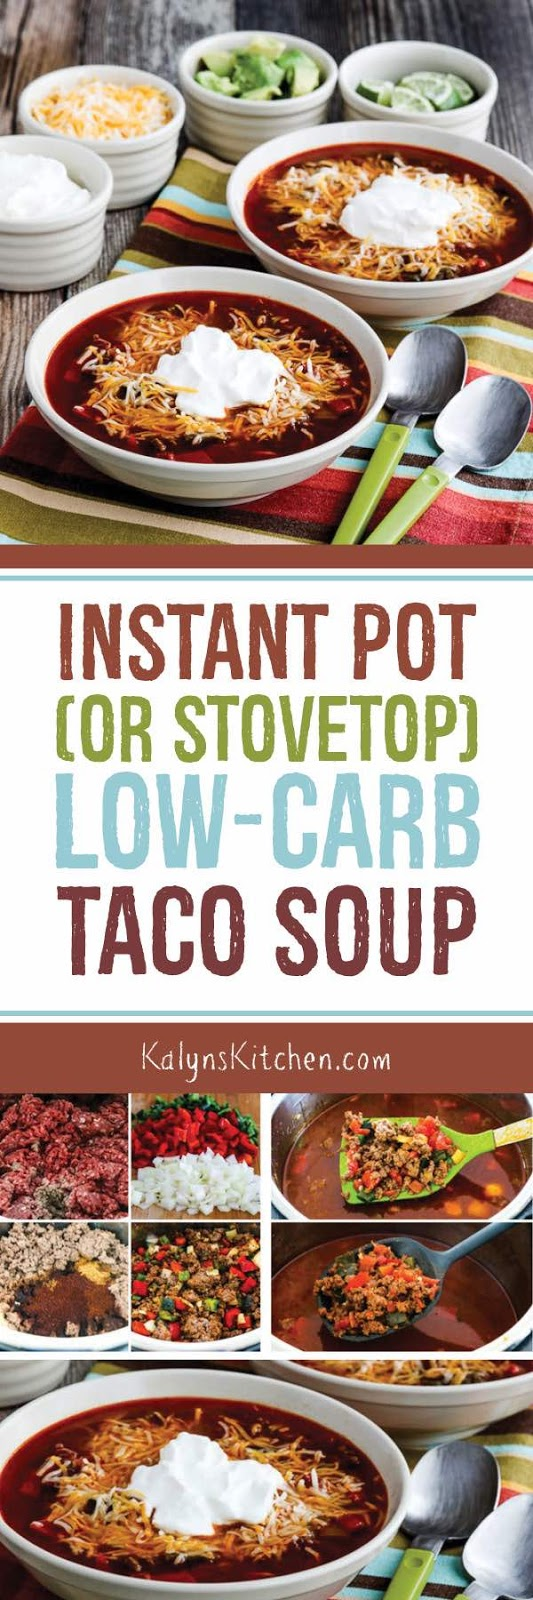 Instant Pot Or Stovetop Low Carb Taco Soup Video